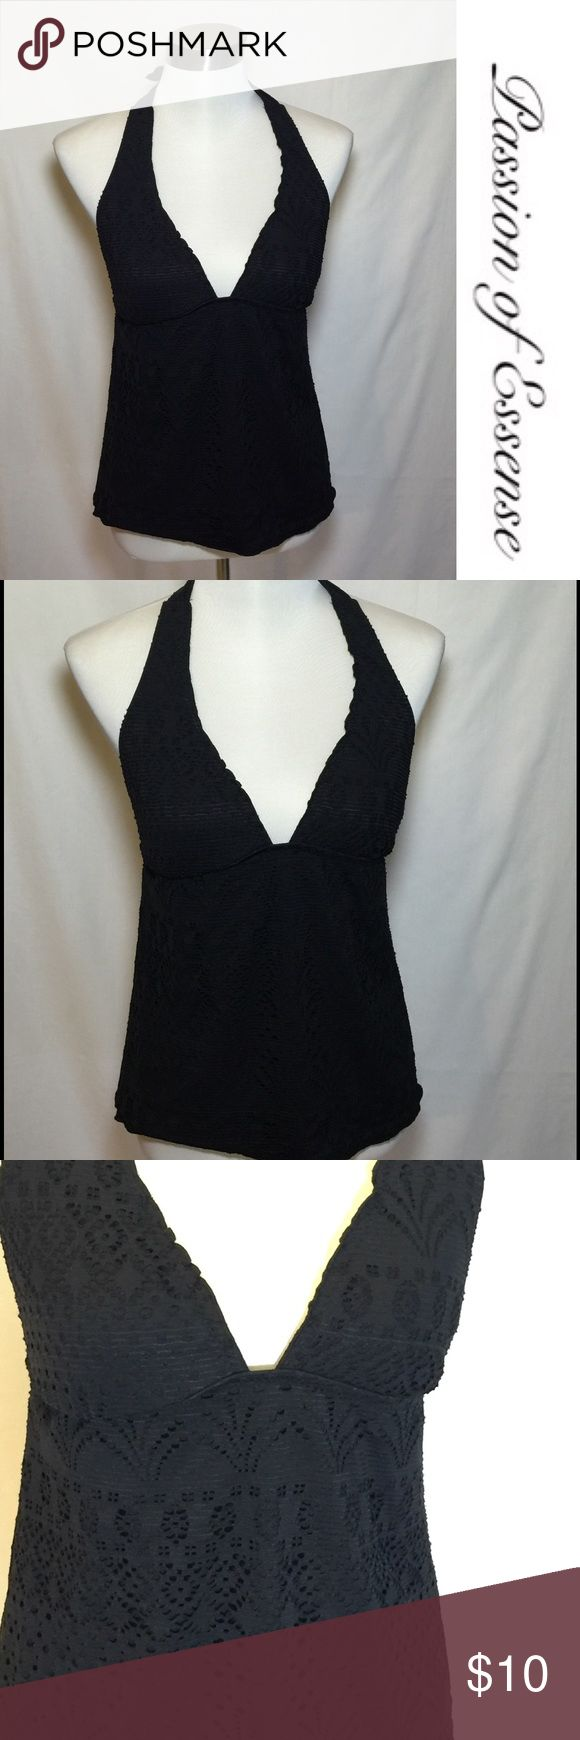 Mossimo Black Lace Swimsuit Top Black Mossimo lace swimsuit shell with a strap around the neckline 87% nylon 13% spandex, double-line 100% polyester. Mossimo Supply Co Swim One Pieces